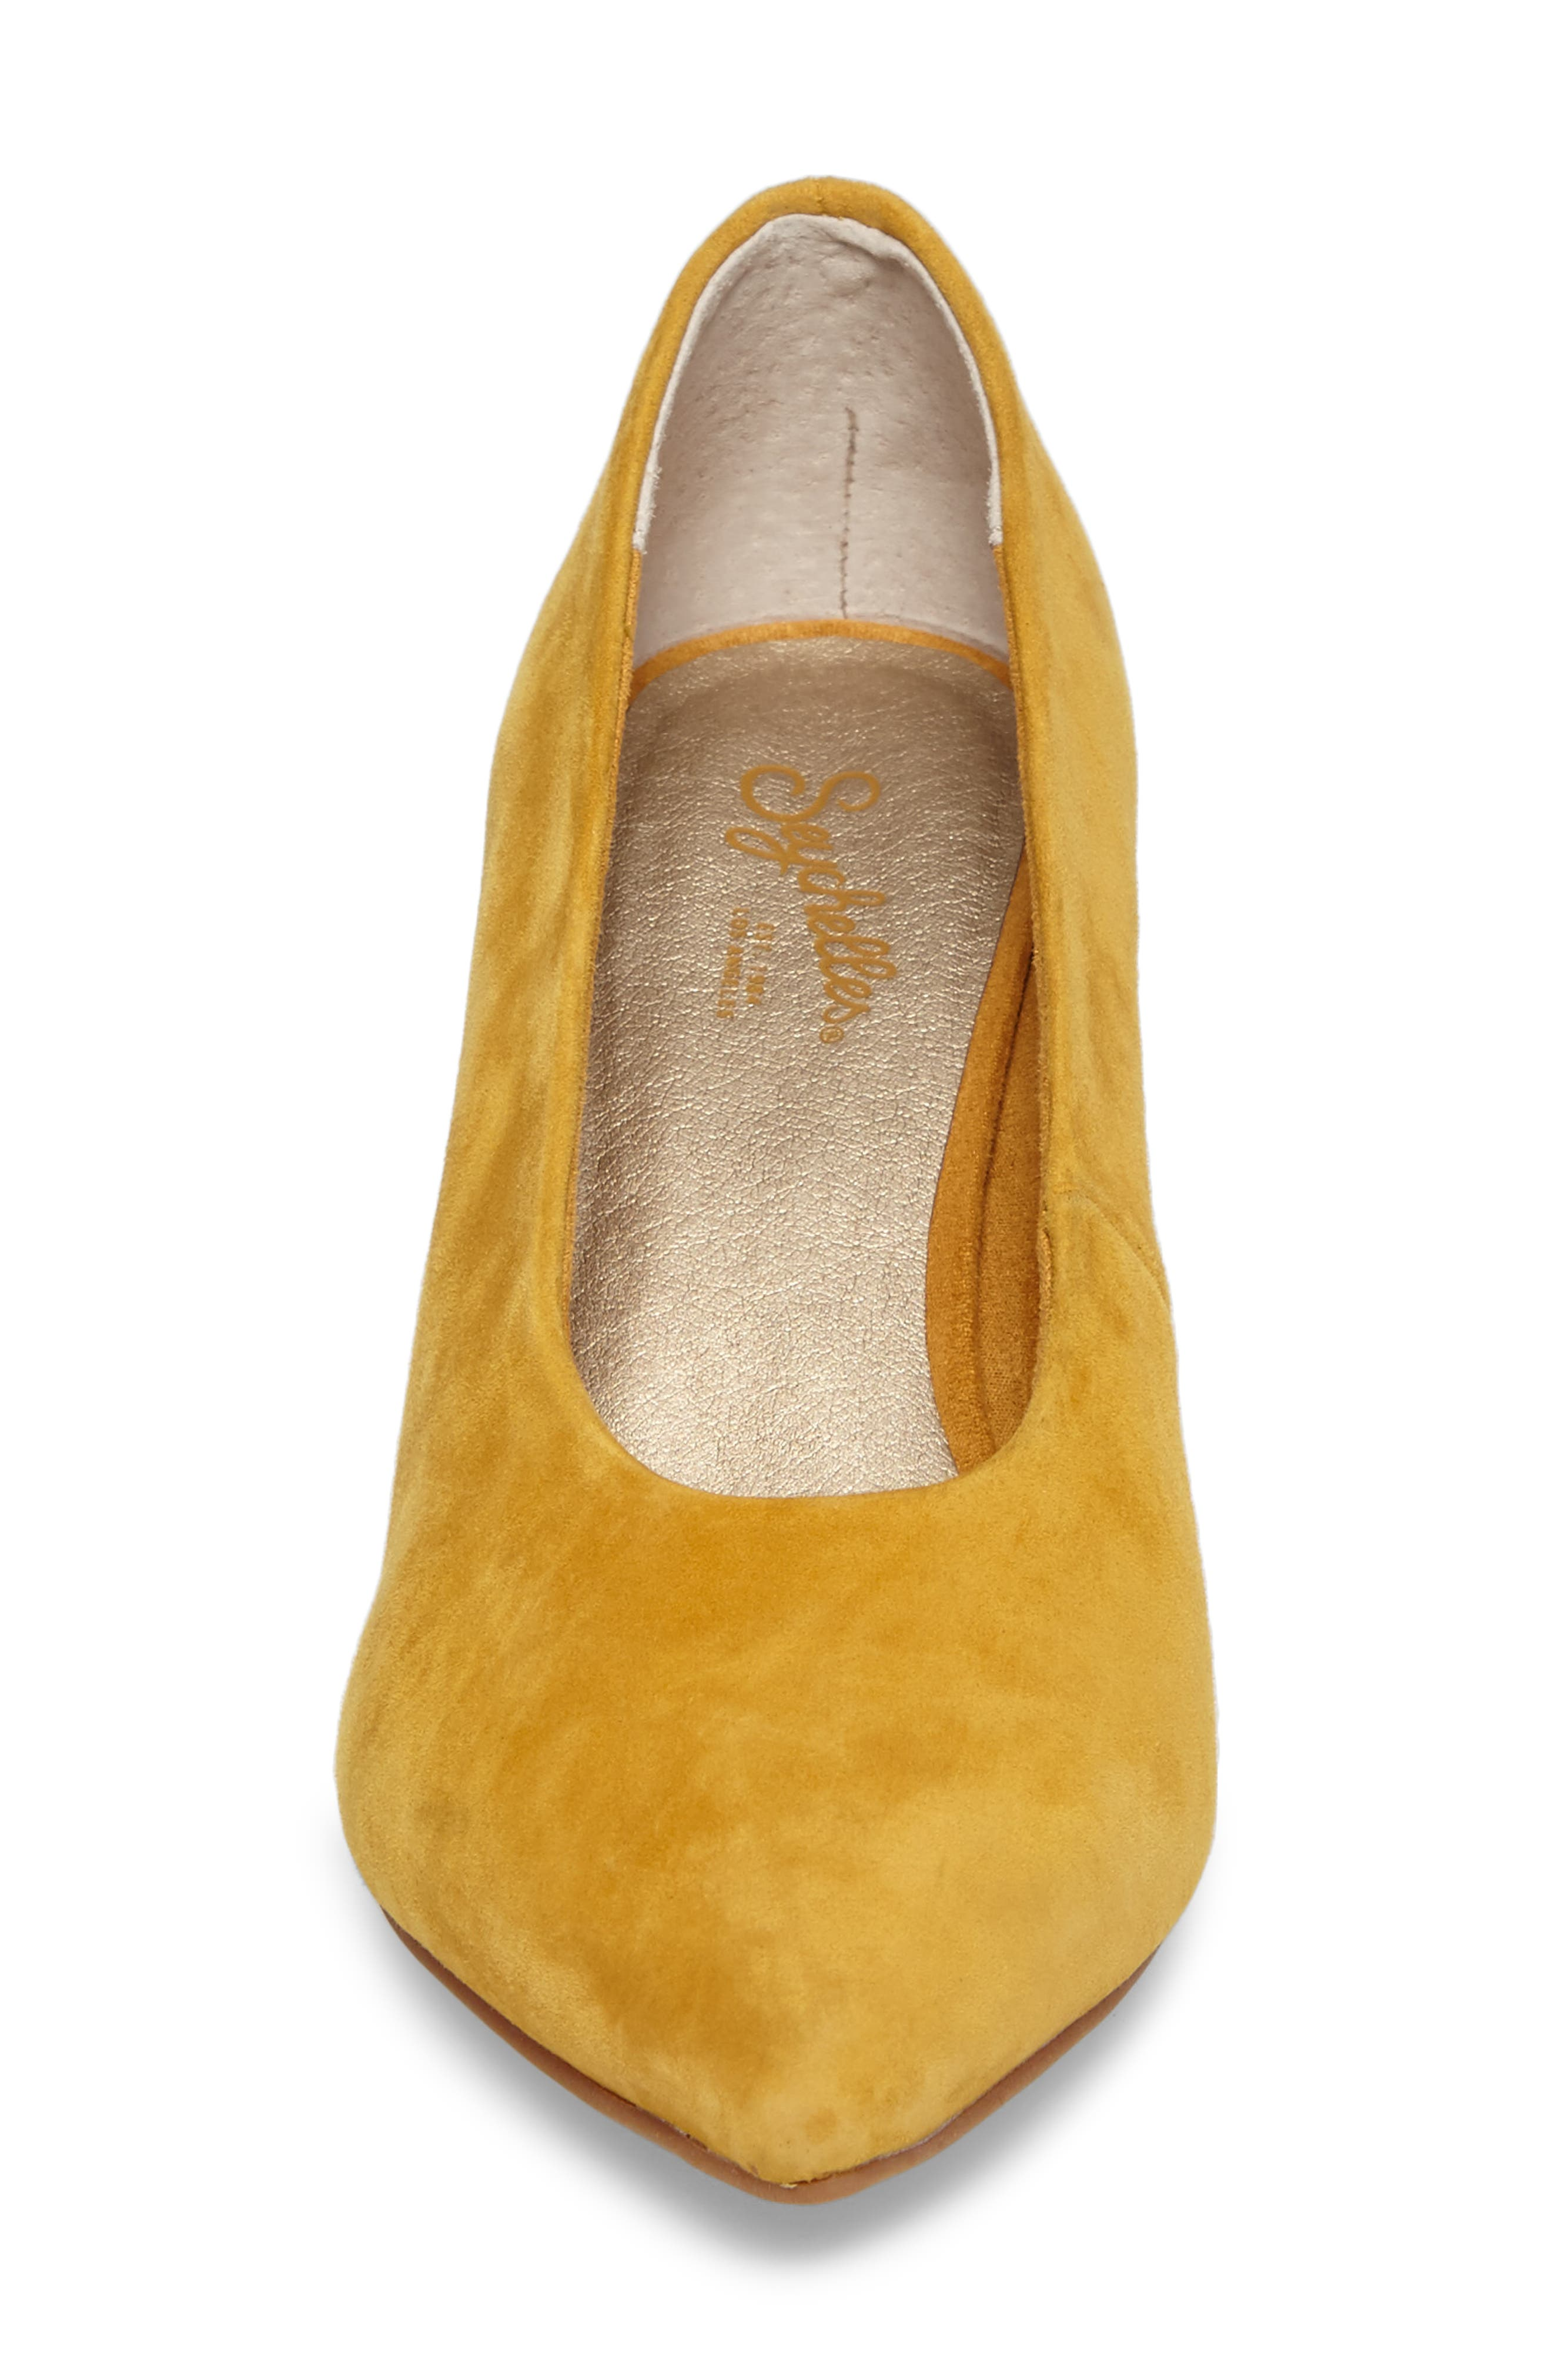 Rehearse Pointy Toe Pump,                             Alternate thumbnail 4, color,                             MUSTARD SUEDE